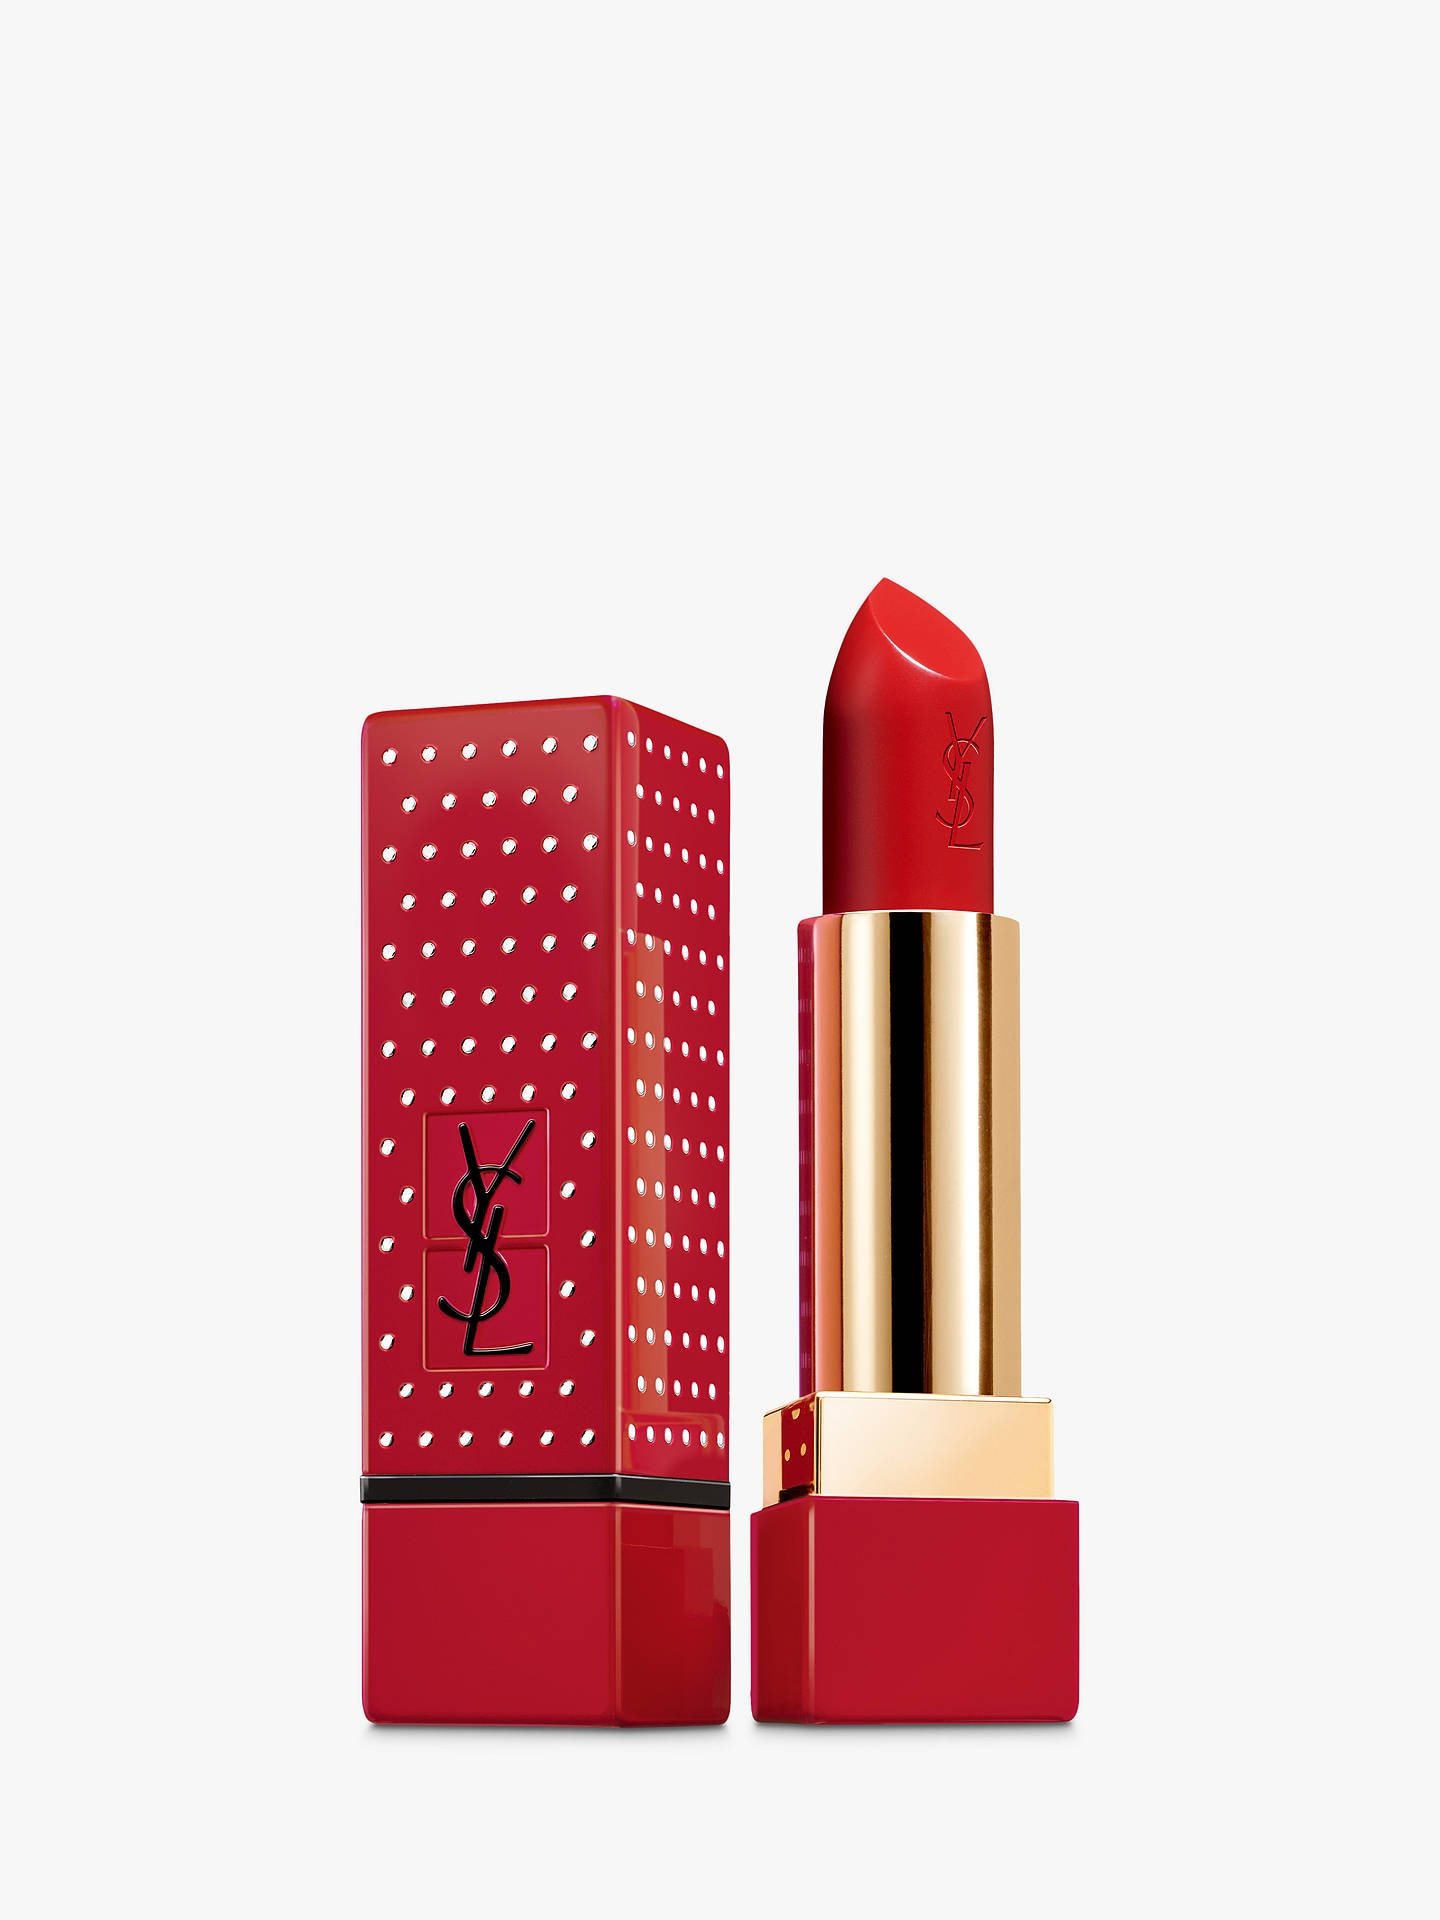 Son YSL Rouge Pur Collector Couture Studs #01 Le Rouge